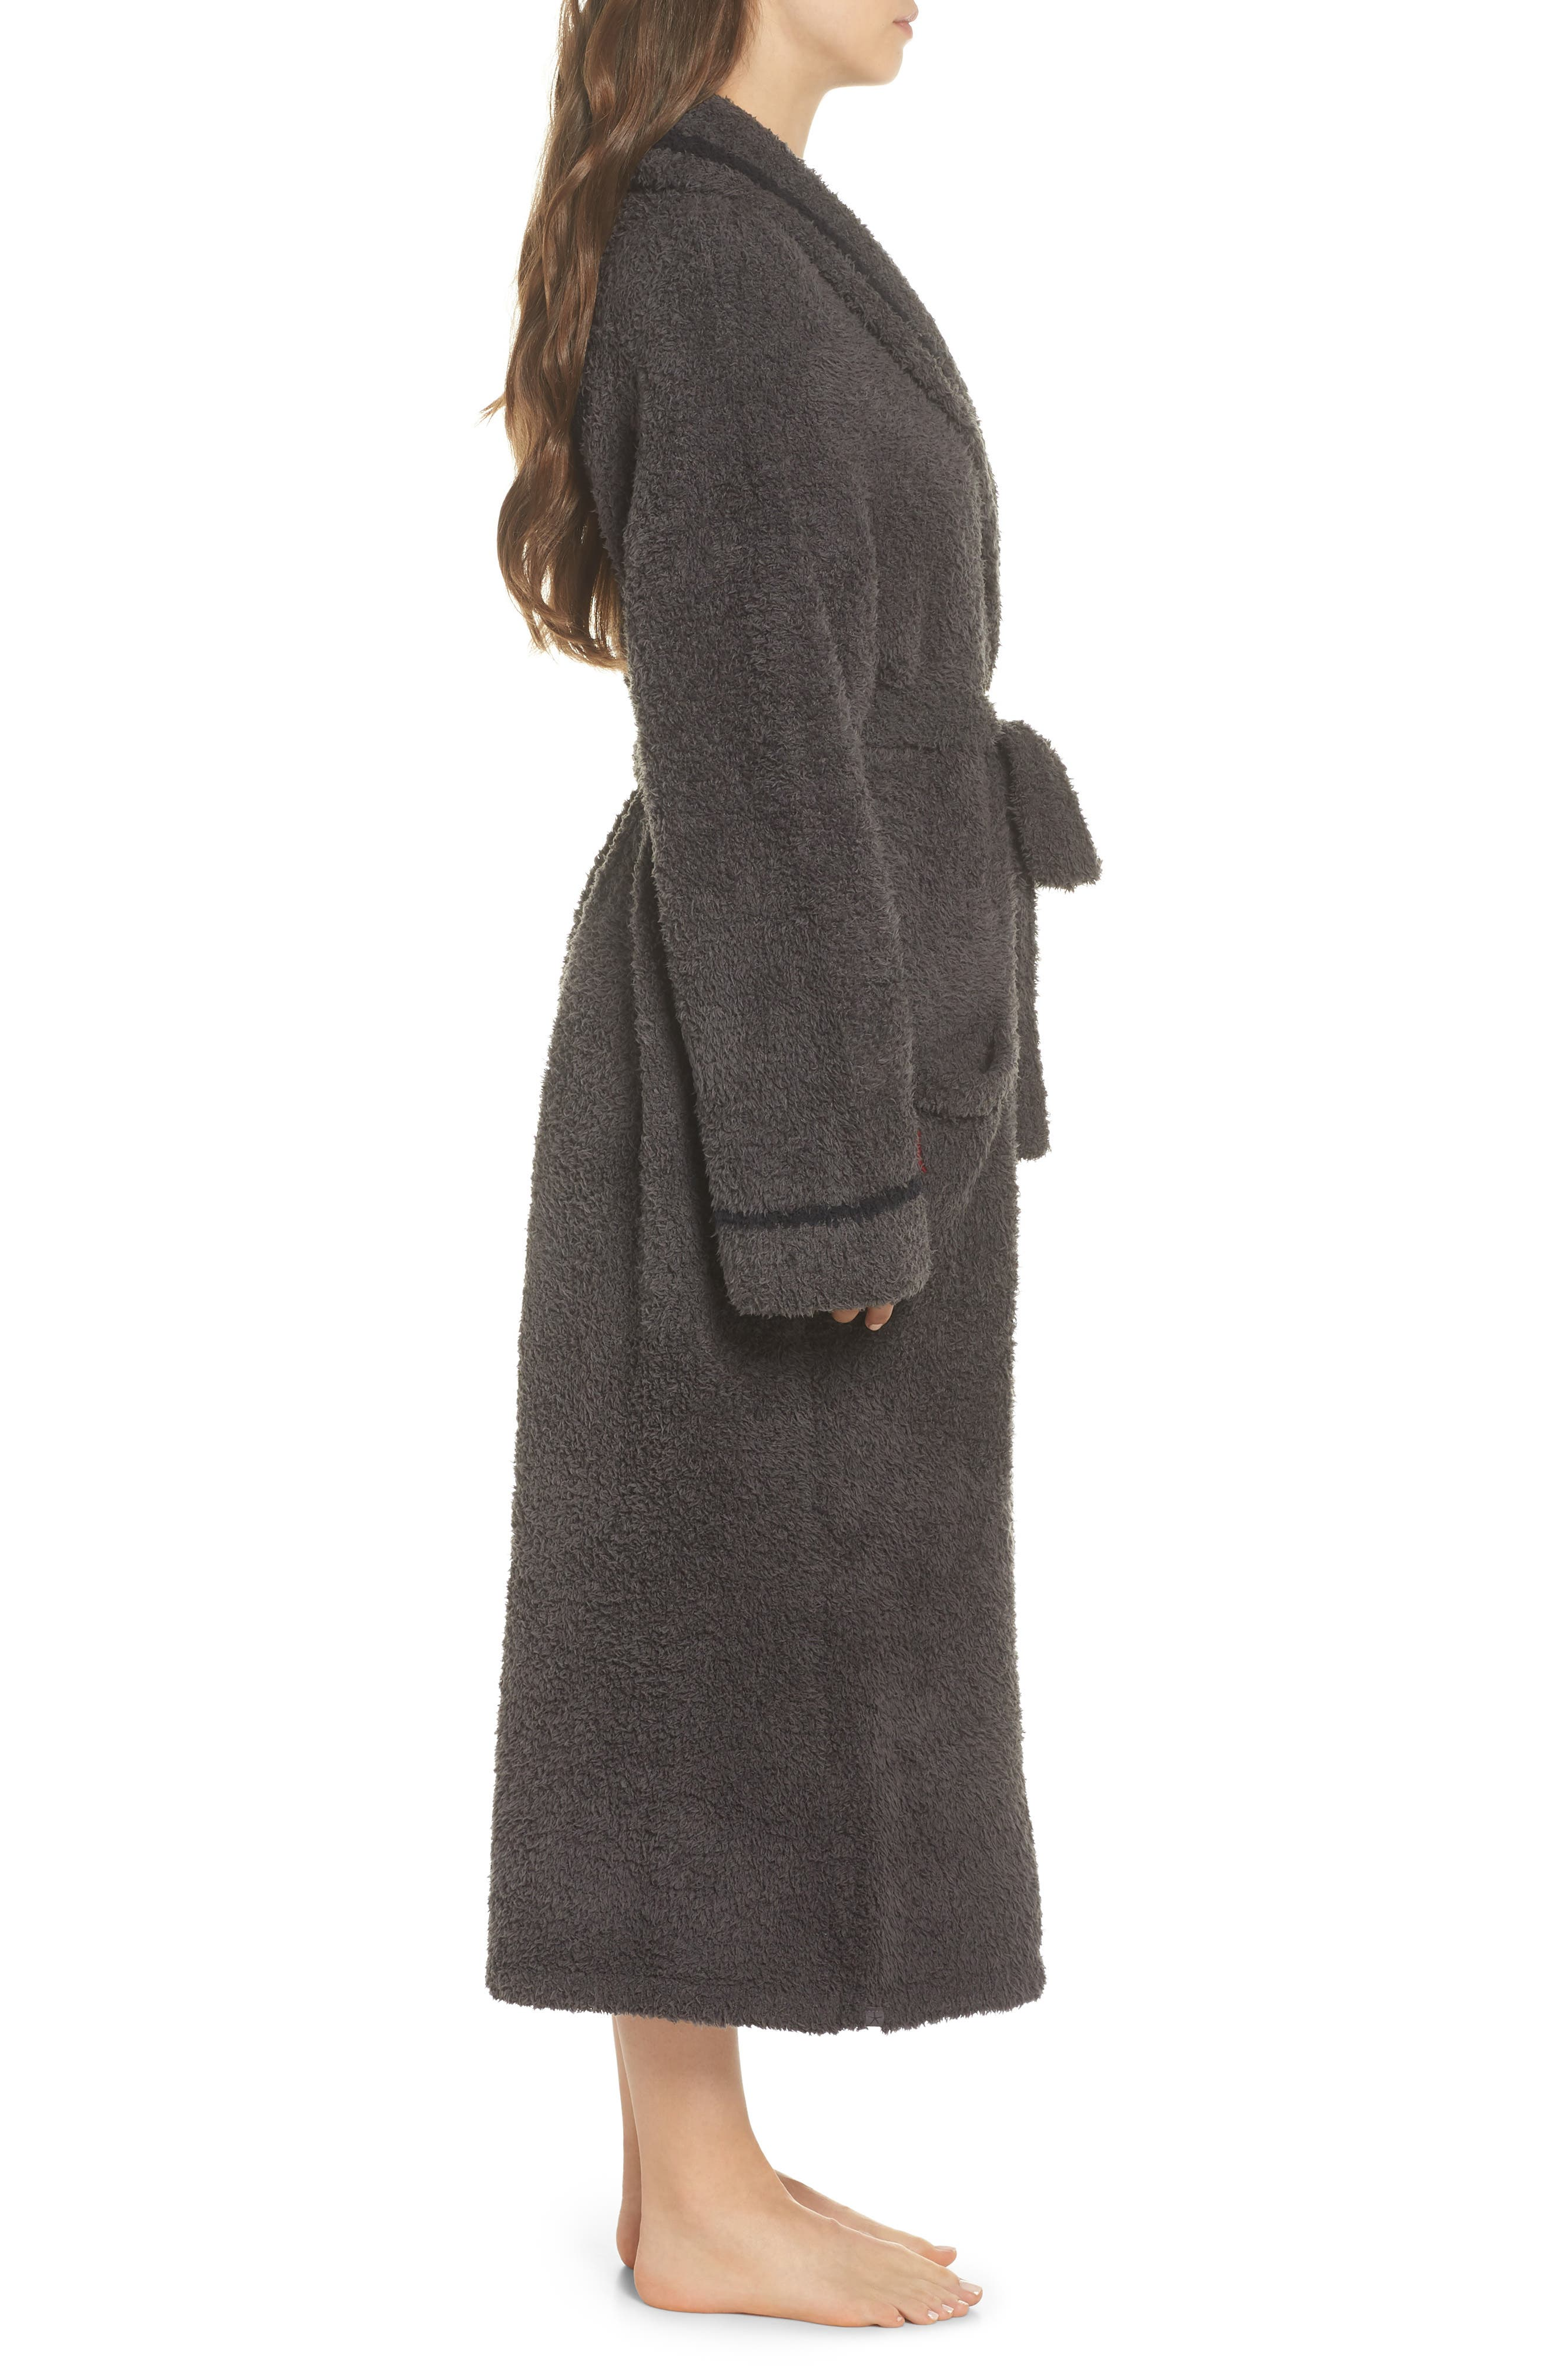 x Disney Classic Series CozyChic<sup>®</sup> Robe,                             Alternate thumbnail 3, color,                             CARBON/ BLACK